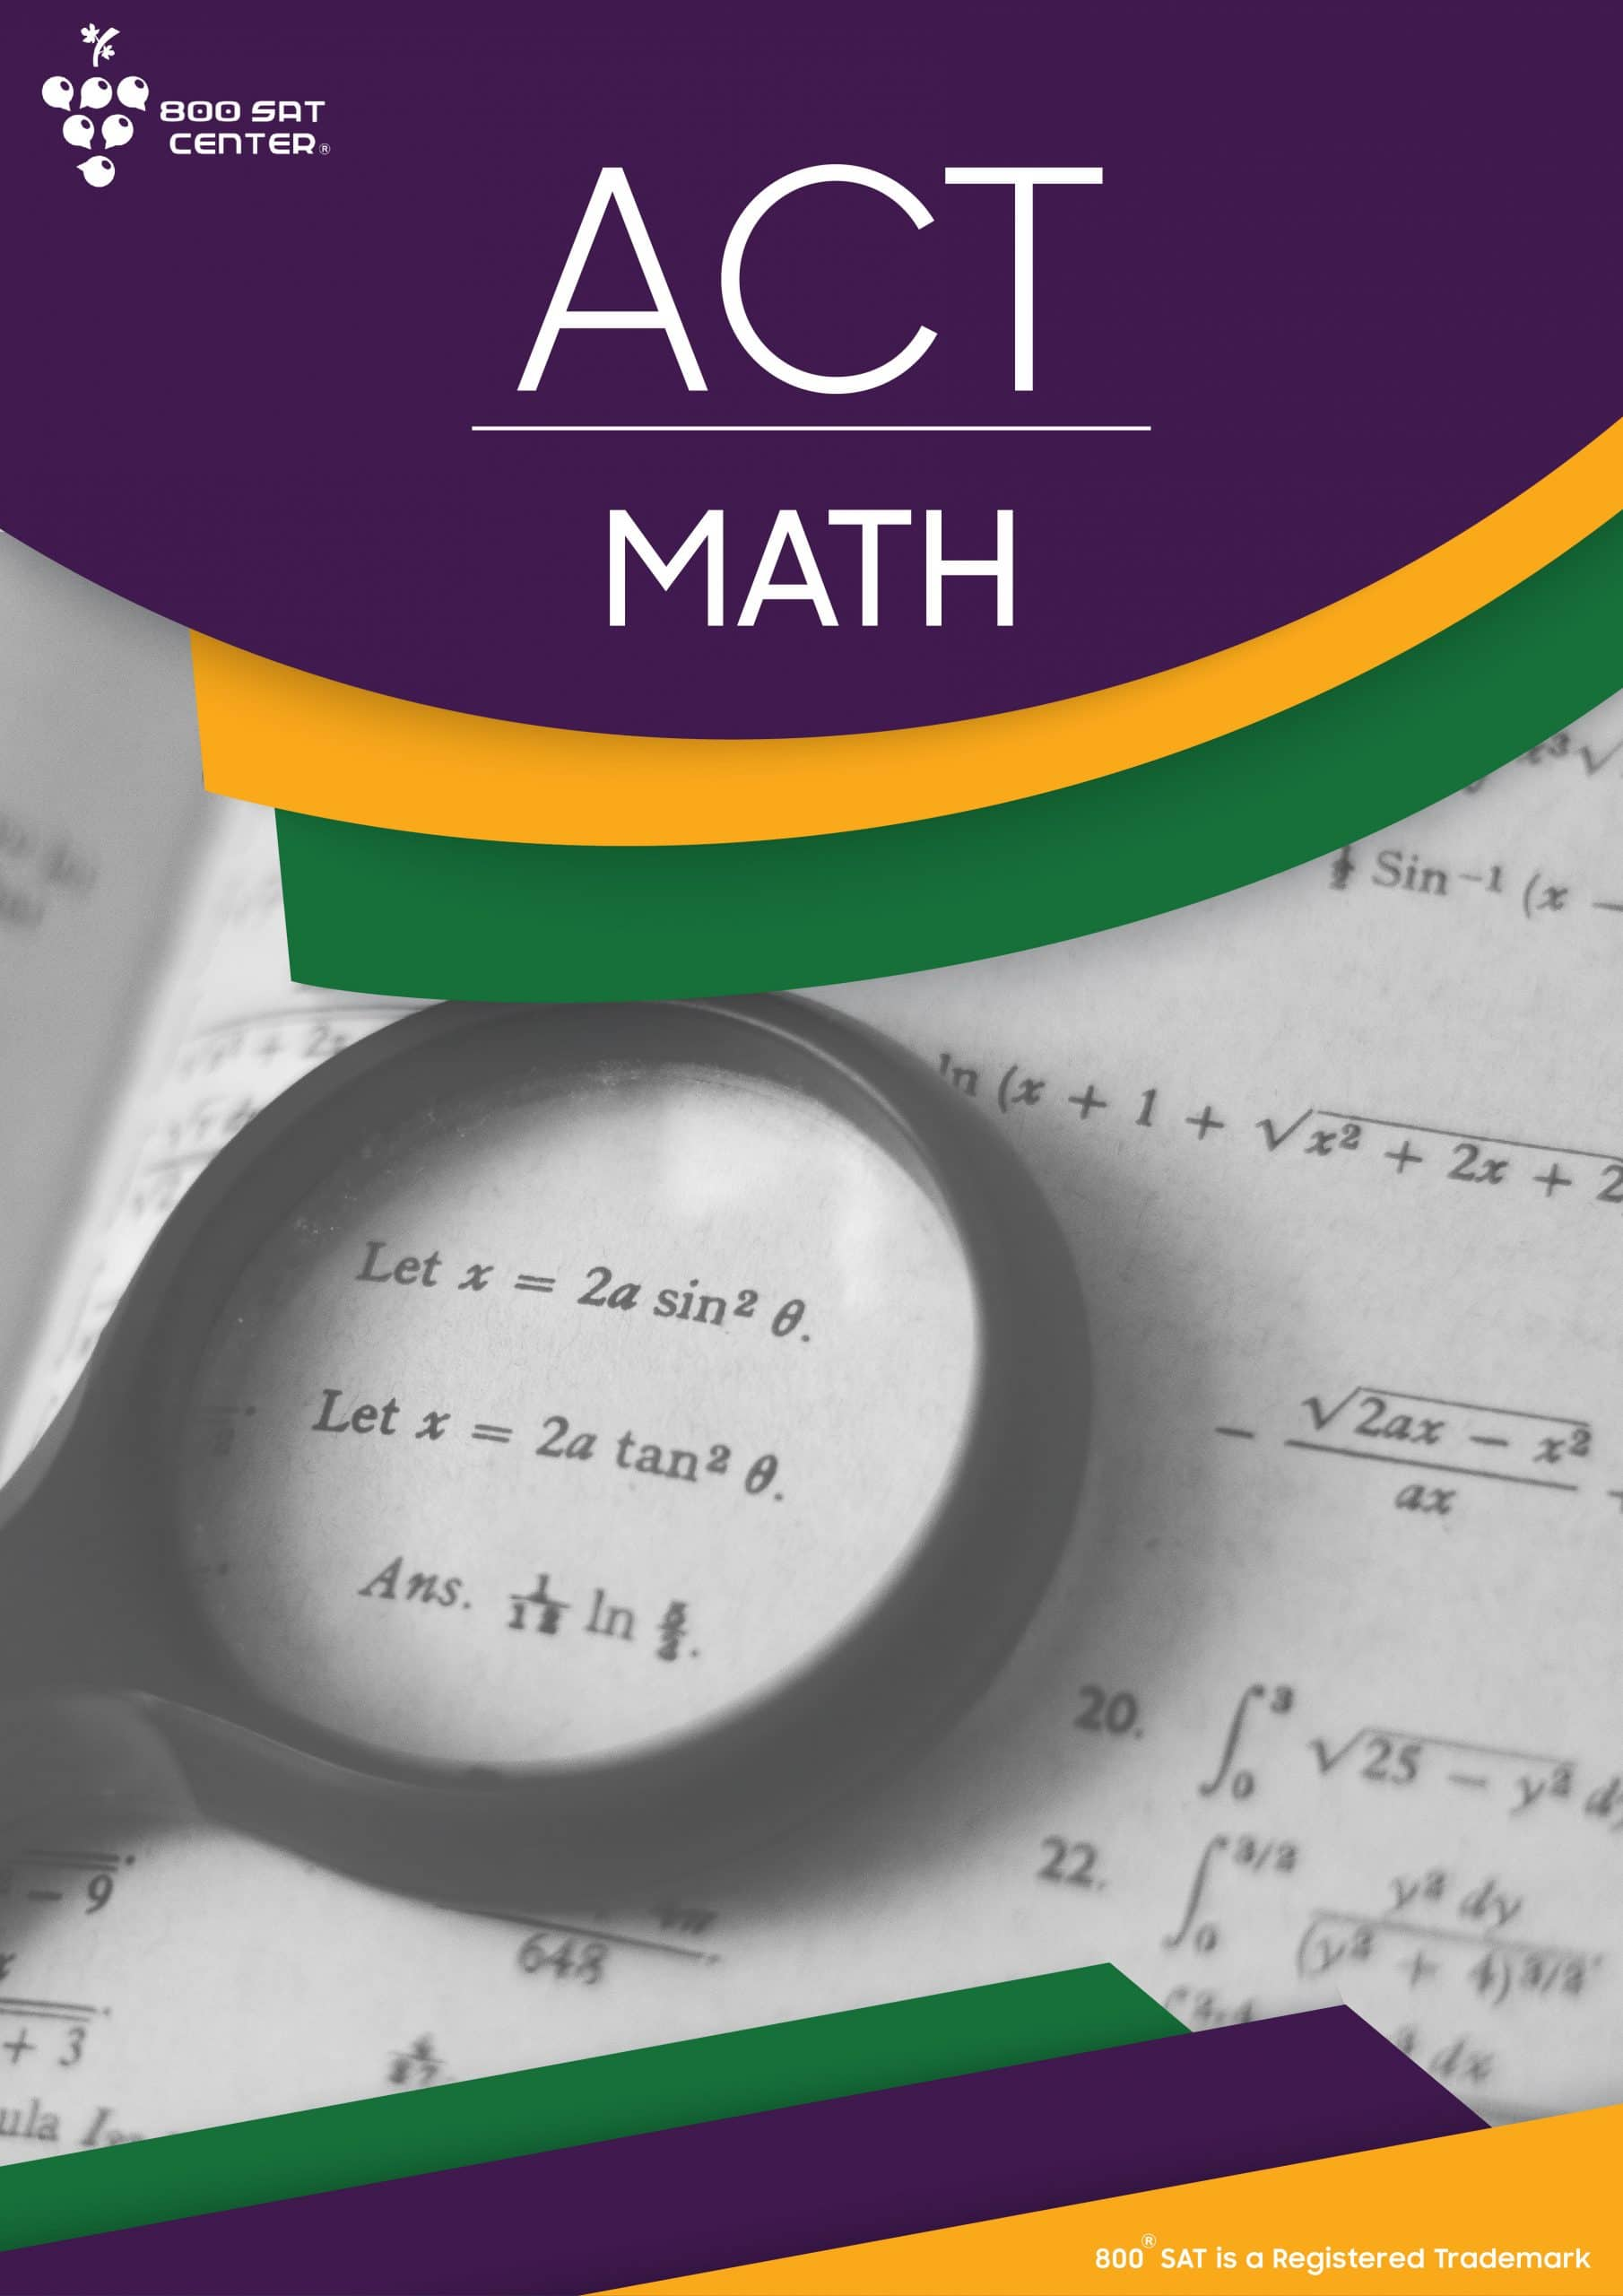 ACT BOOK COVERS-01 (2)